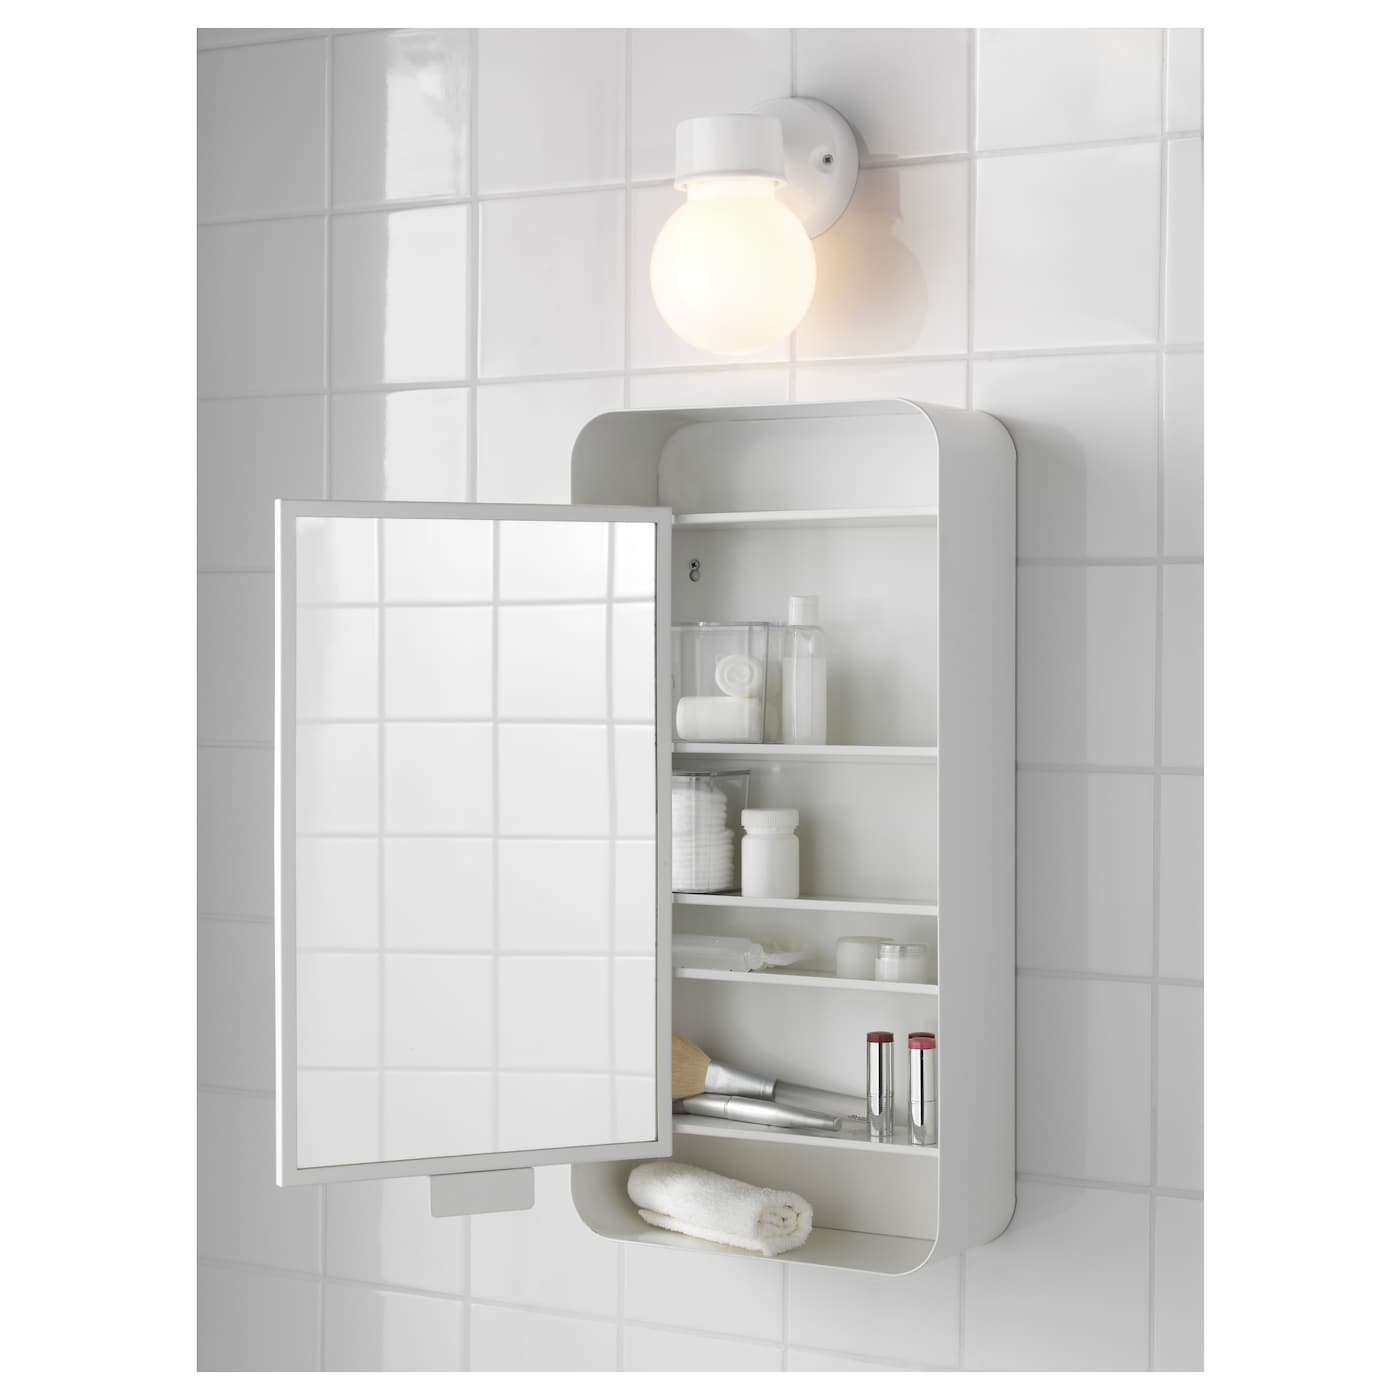 mirrored bathroom cabinets ikea gunnern mirror cabinet with 1 door white 31x62 cm ikea 23388